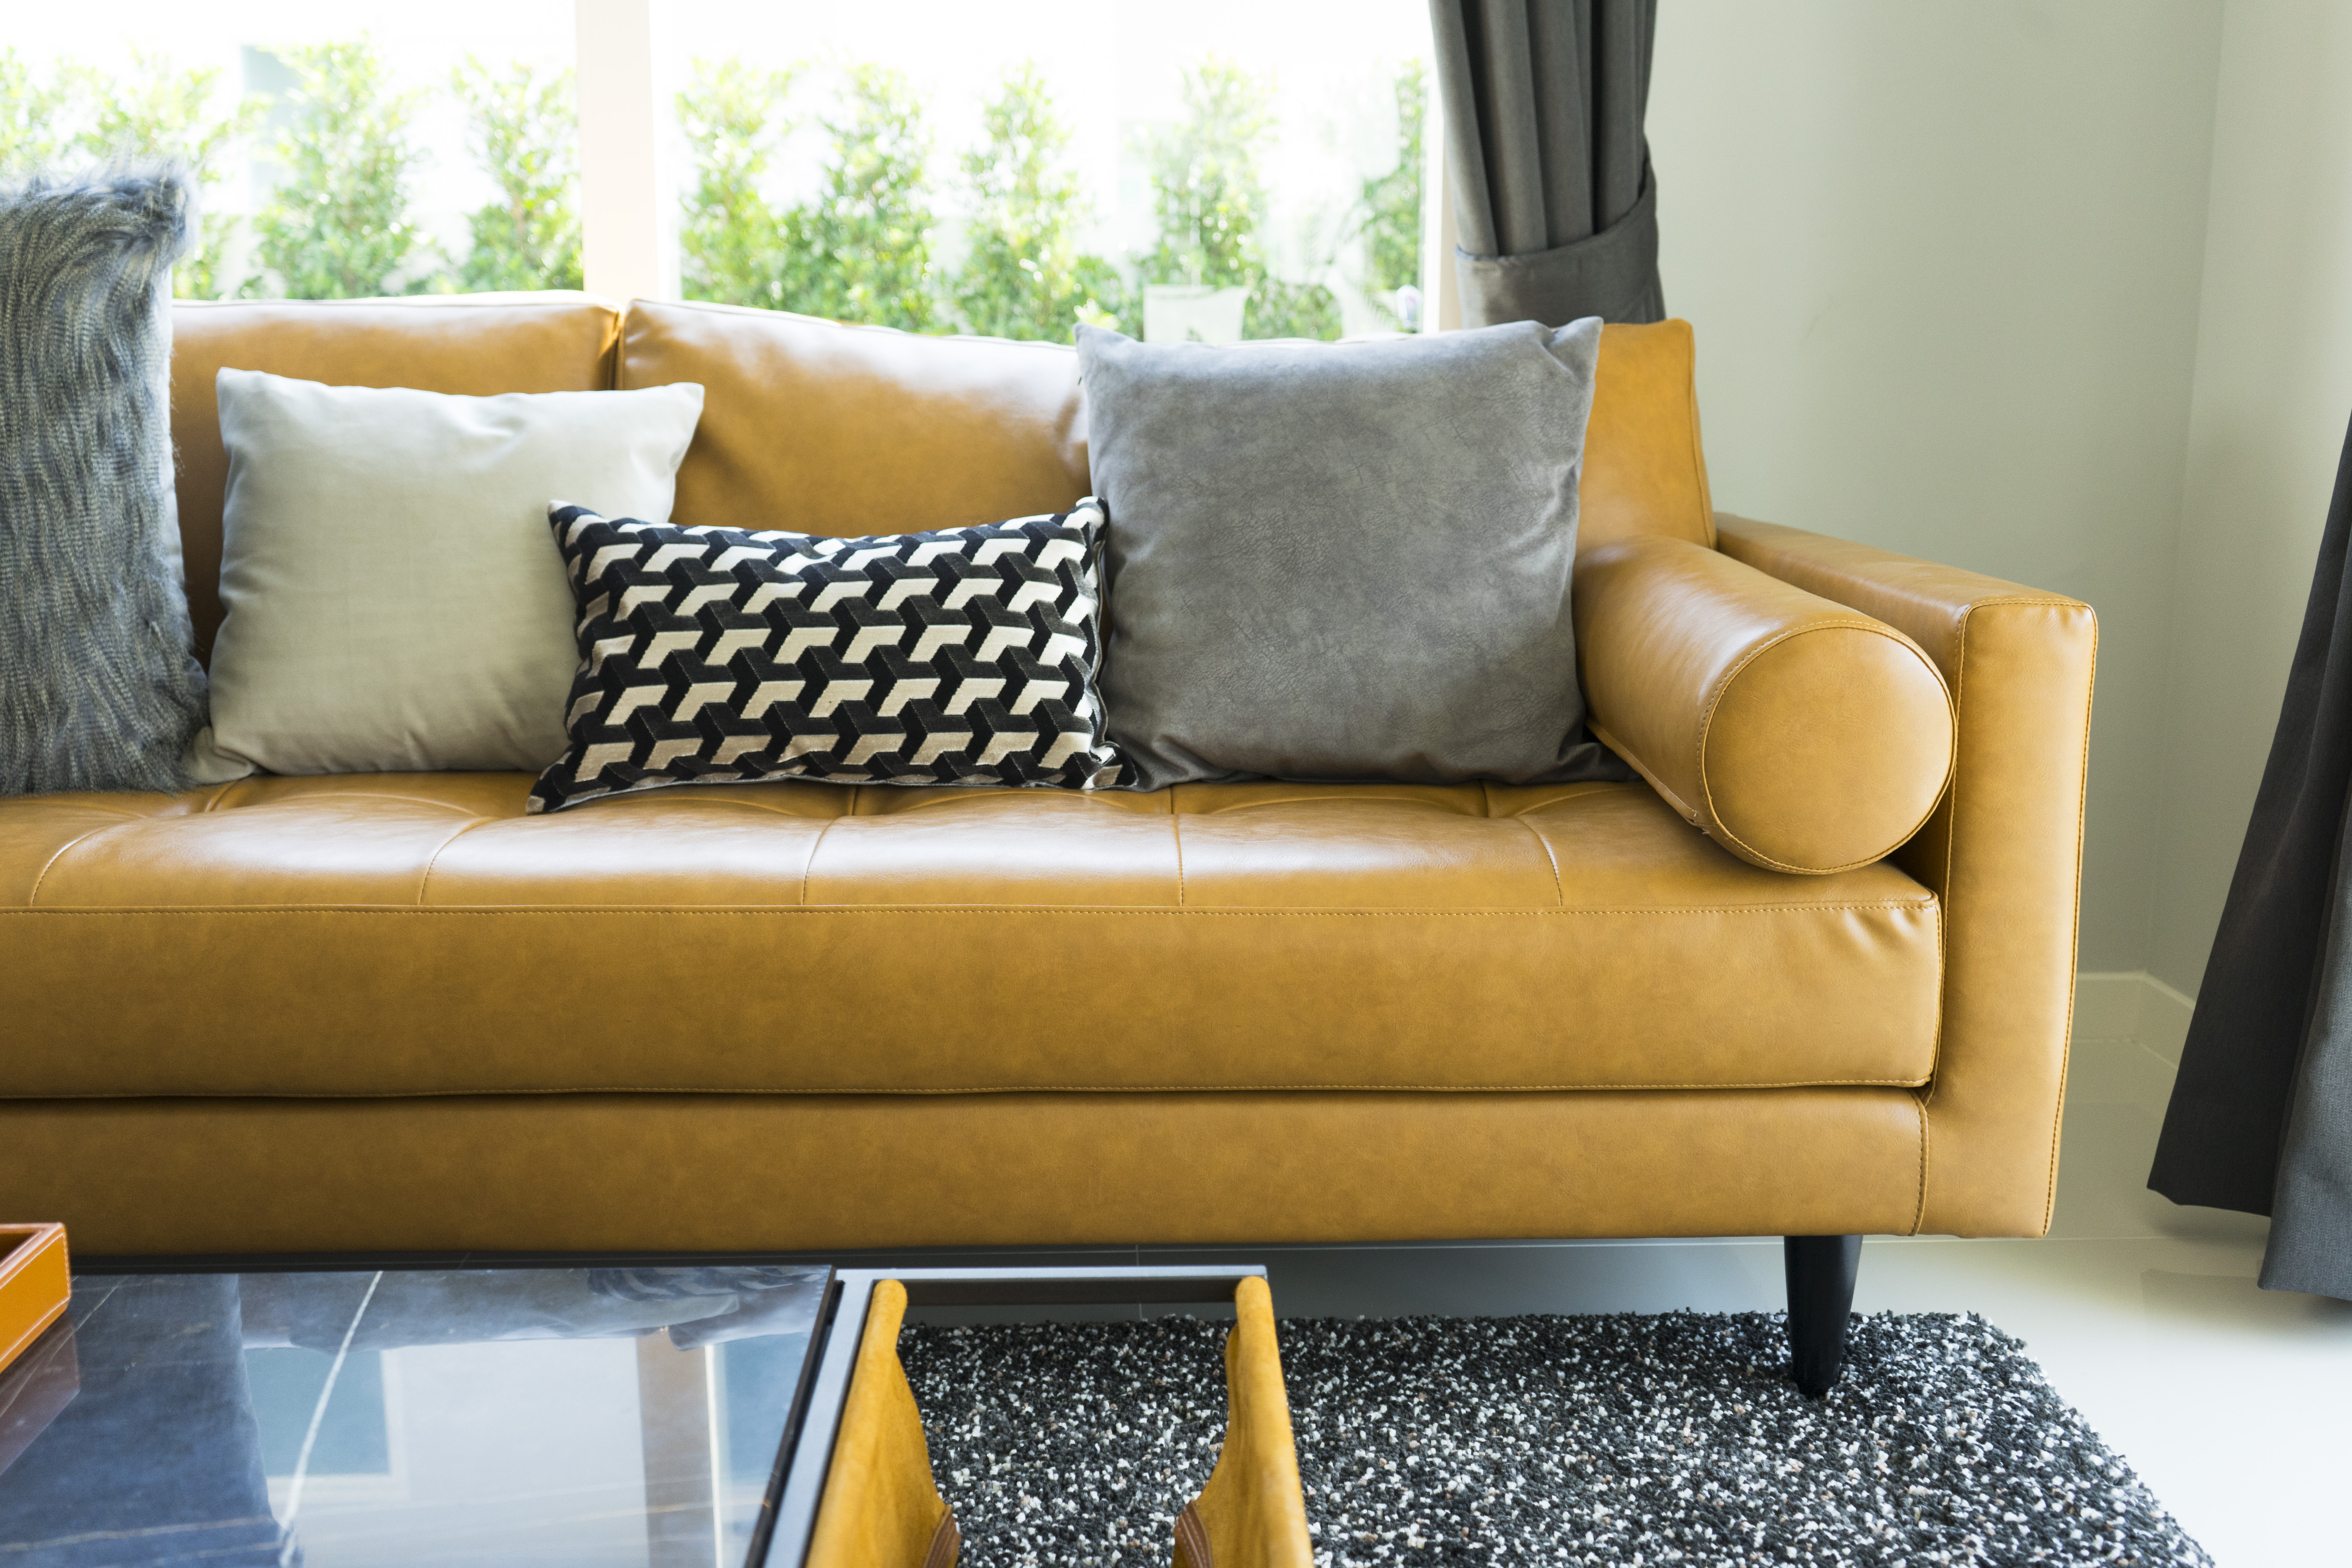 How To Fill Leather Sofa Cushions Sewn To The Frame